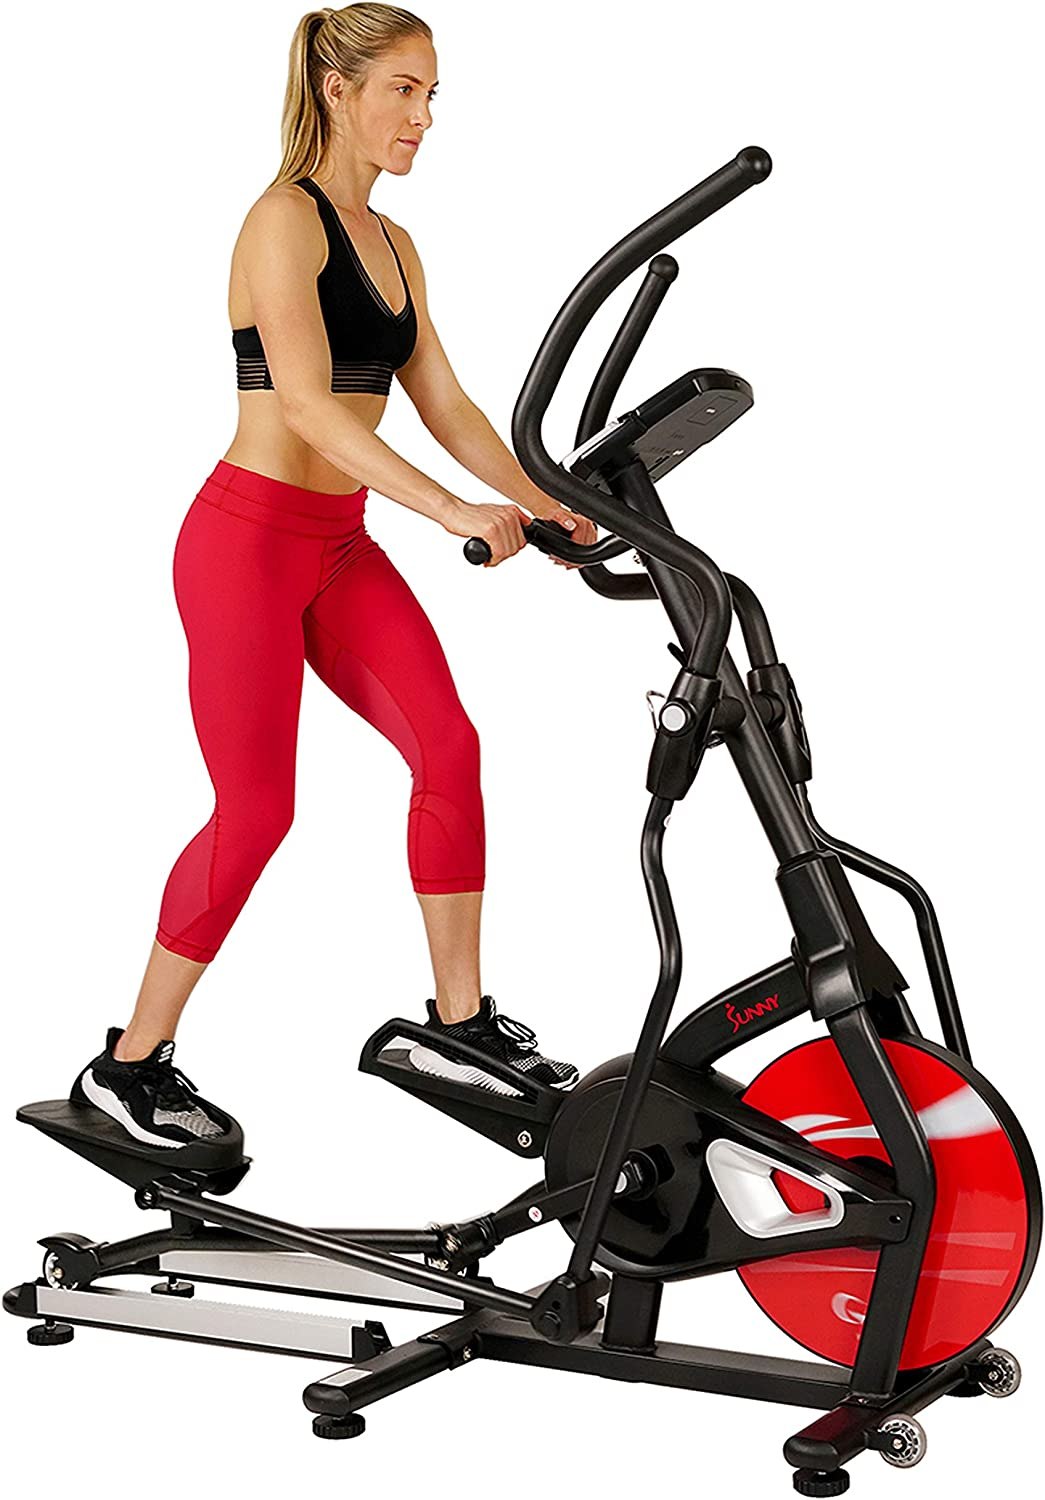 Sunny Health & Fitness Magnetic Elliptical Trainer Machine w/ Tablet Holder, LCD Monitor, 265 Max Weight and Pulse Monitor - Stride Zone - SF-E3865,Black